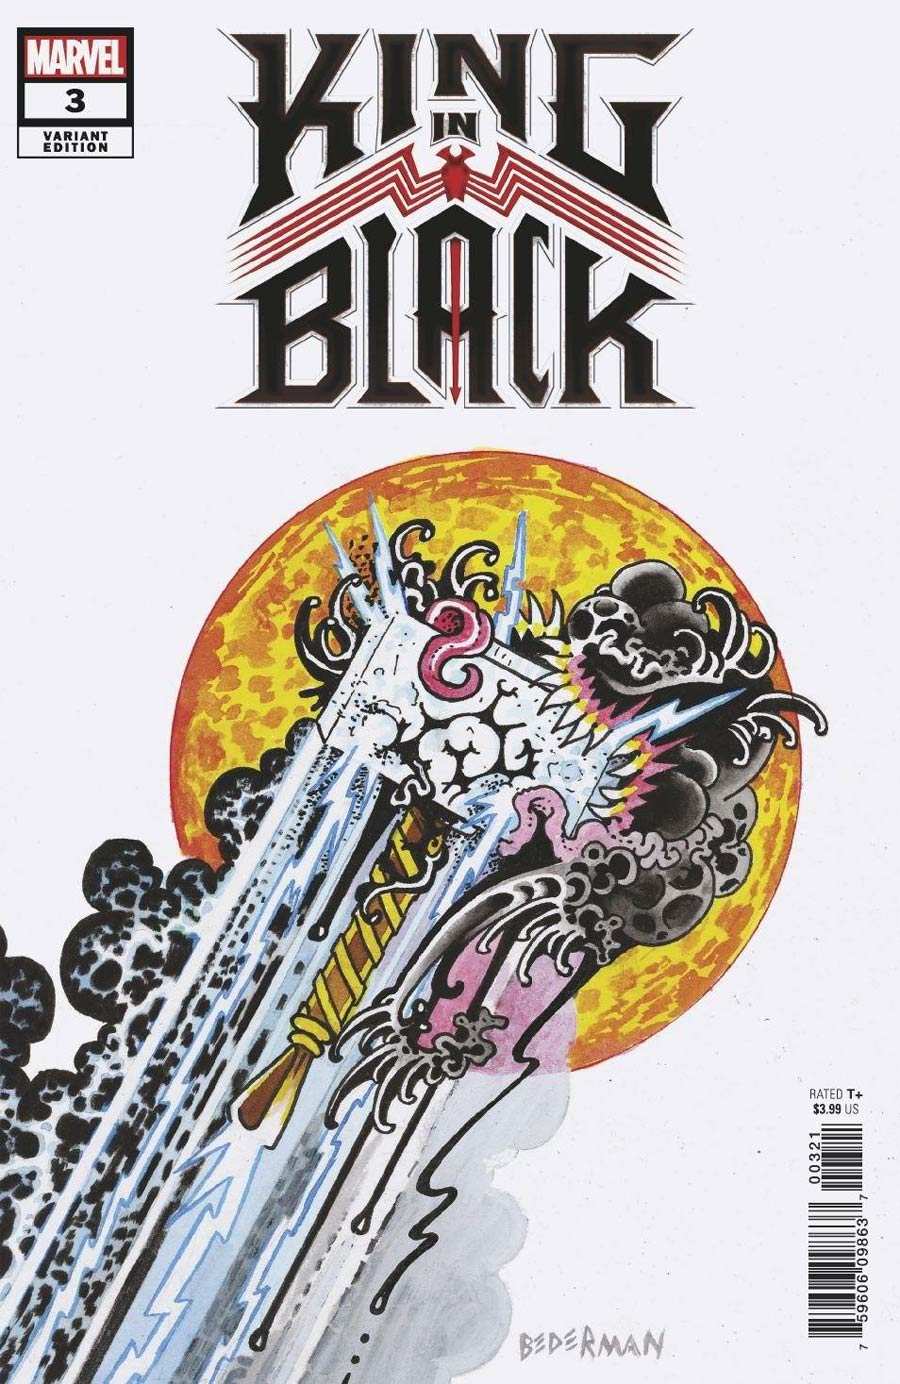 King In Black #3 Cover D Variant Ian Bederman Tattoo Cover